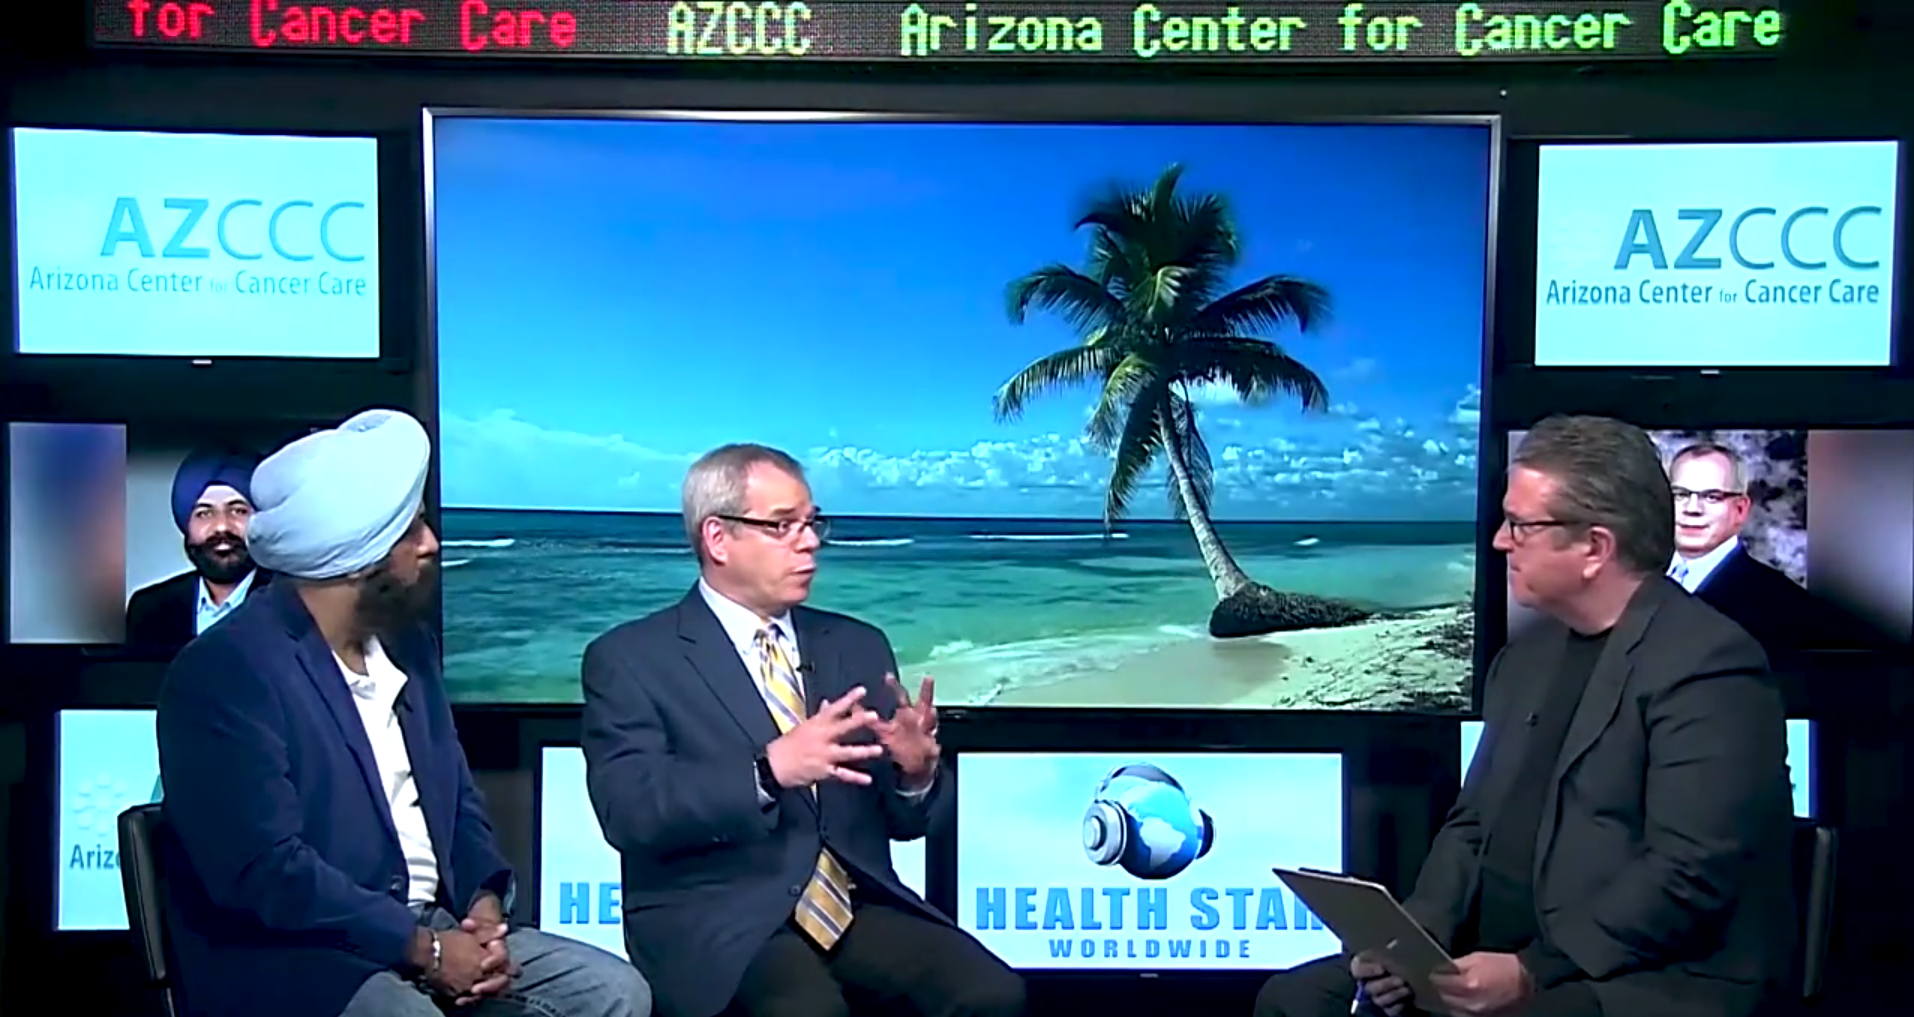 AZCCC The colon and risks for colon cancer